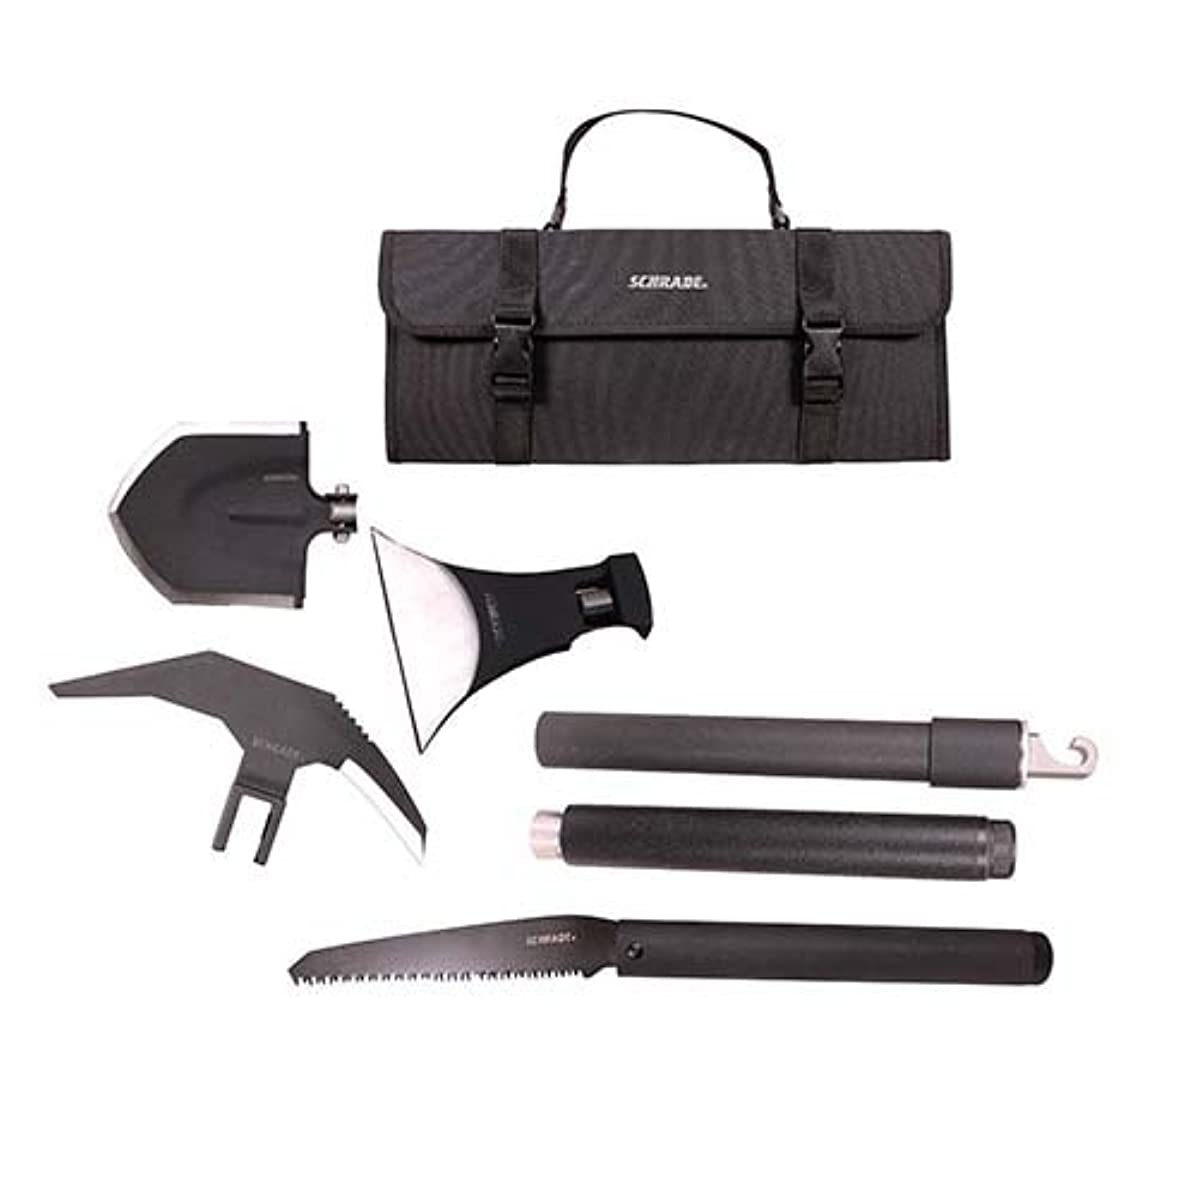 Schrade SCHEXC Outdoor Survival Kit with Expandable, Interchangeable Tool System for Emergency, Camping, Hiking and Outdoors